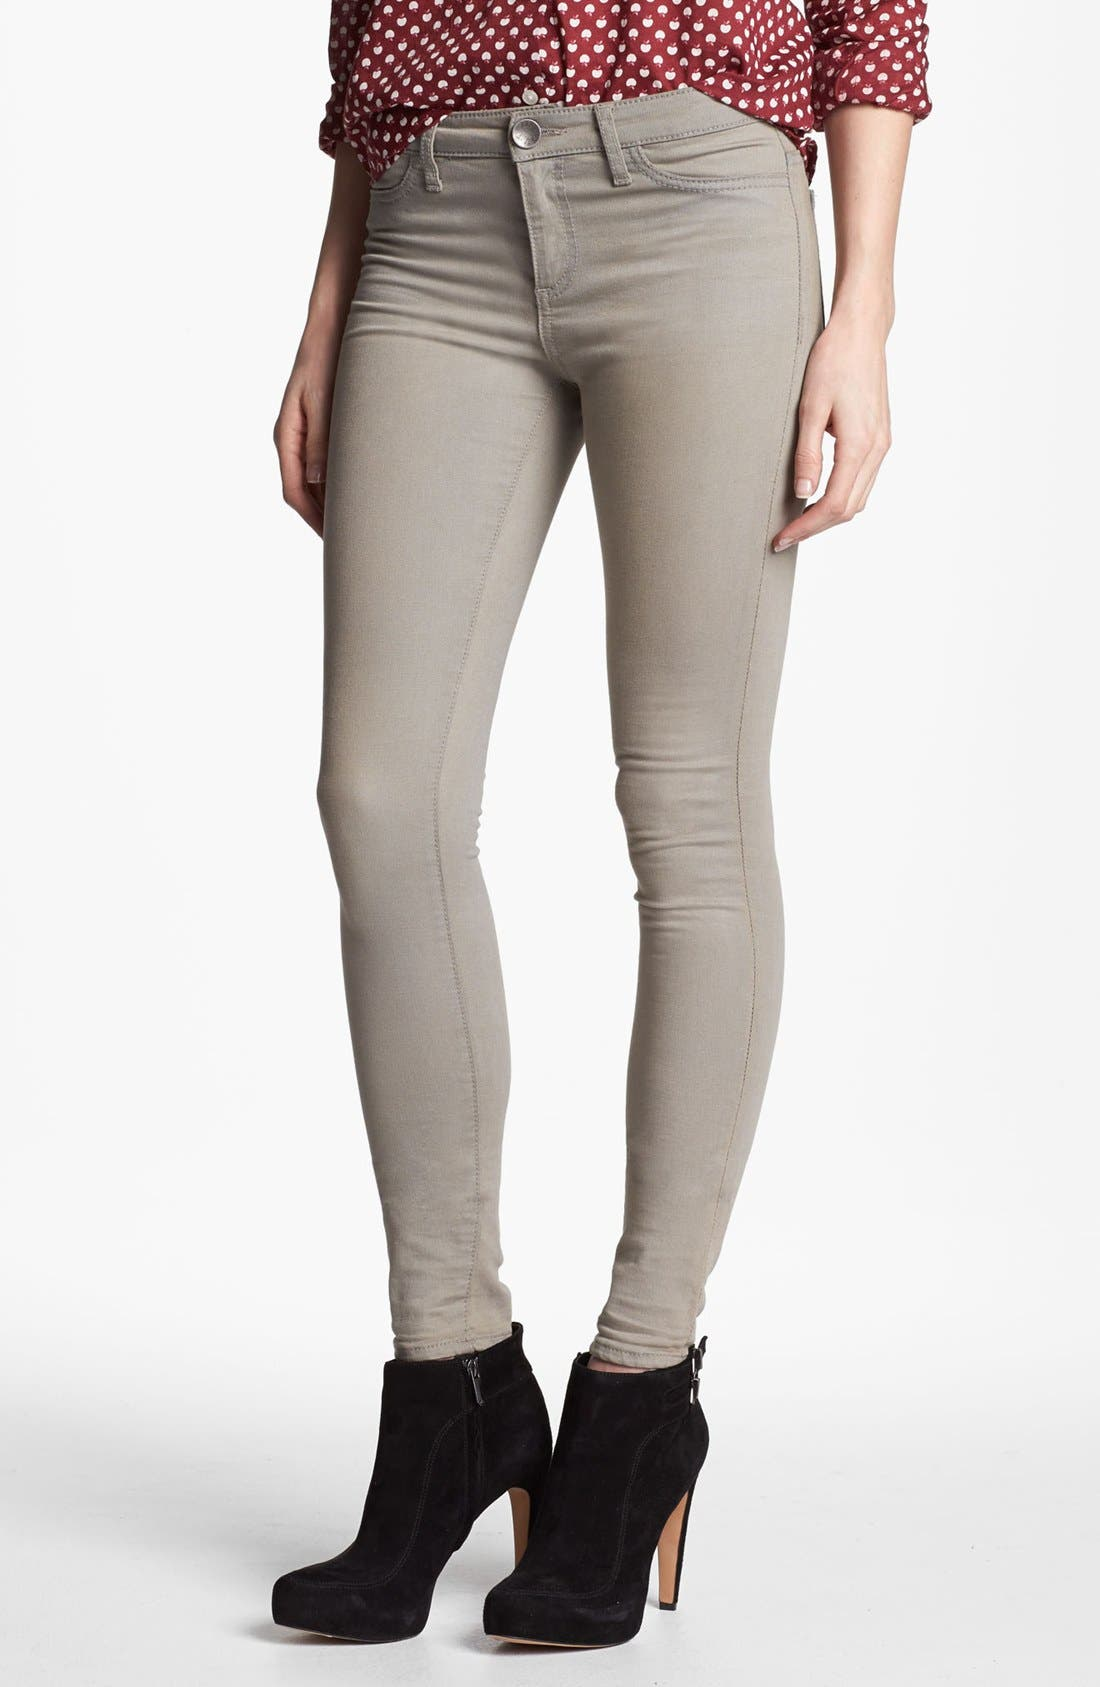 Main Image - KUT from the Kloth 'Jennifer' Skinny Jeans (Taupe Grey)